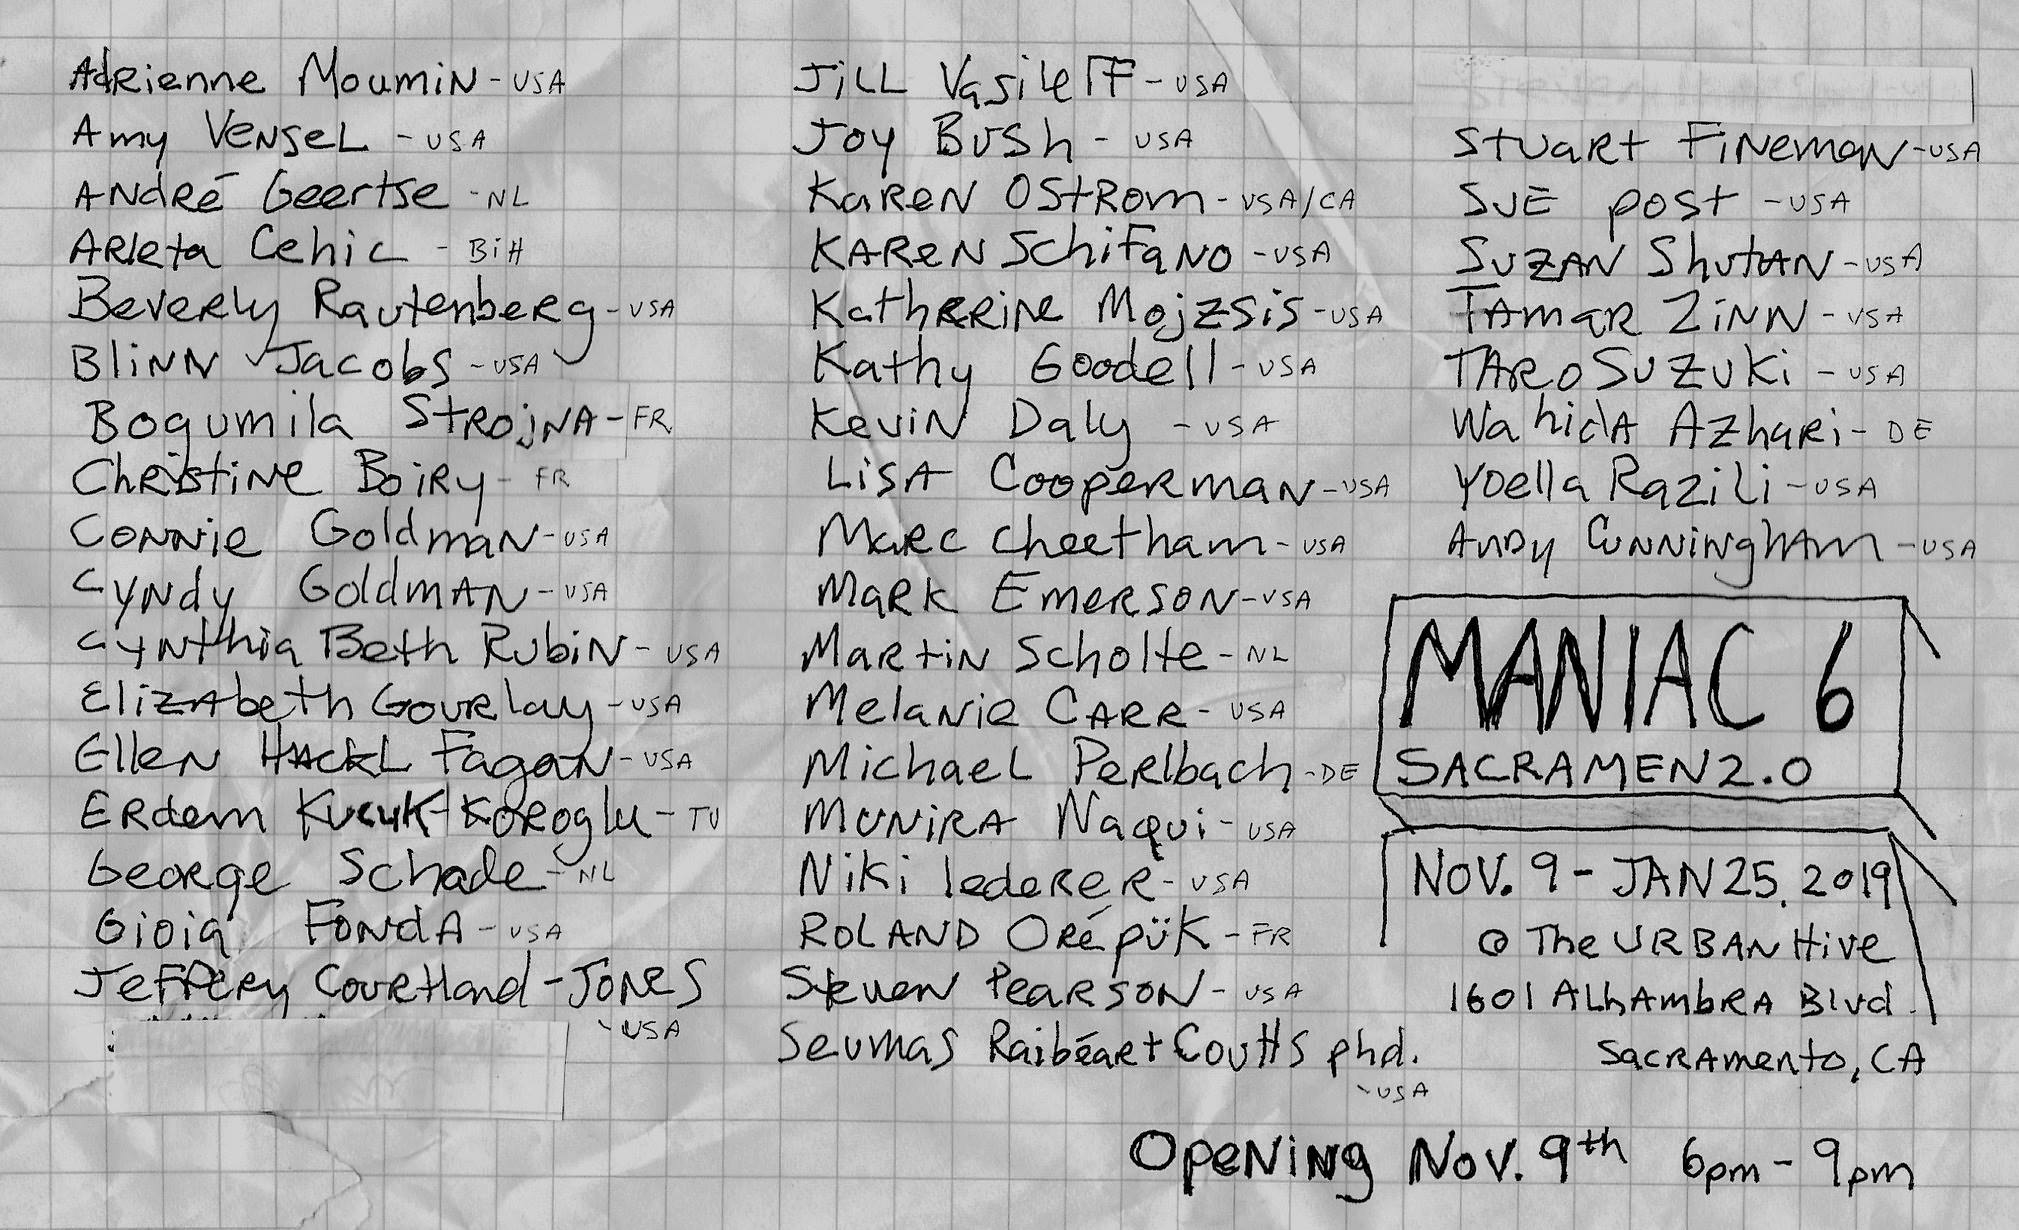 Manic Episode 6 card